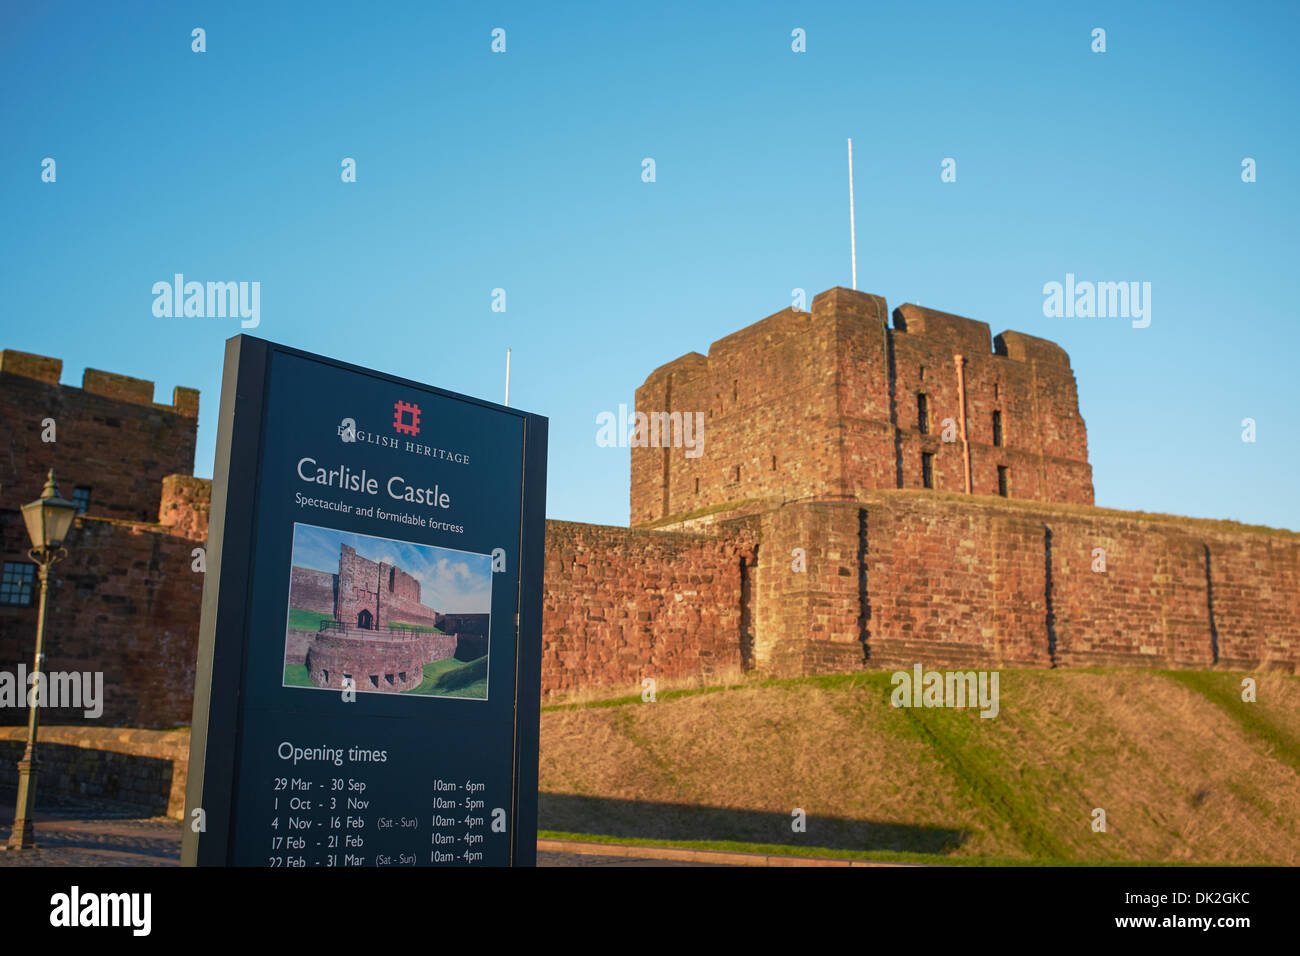 The Castle in Carlisle city centre - Stock Image